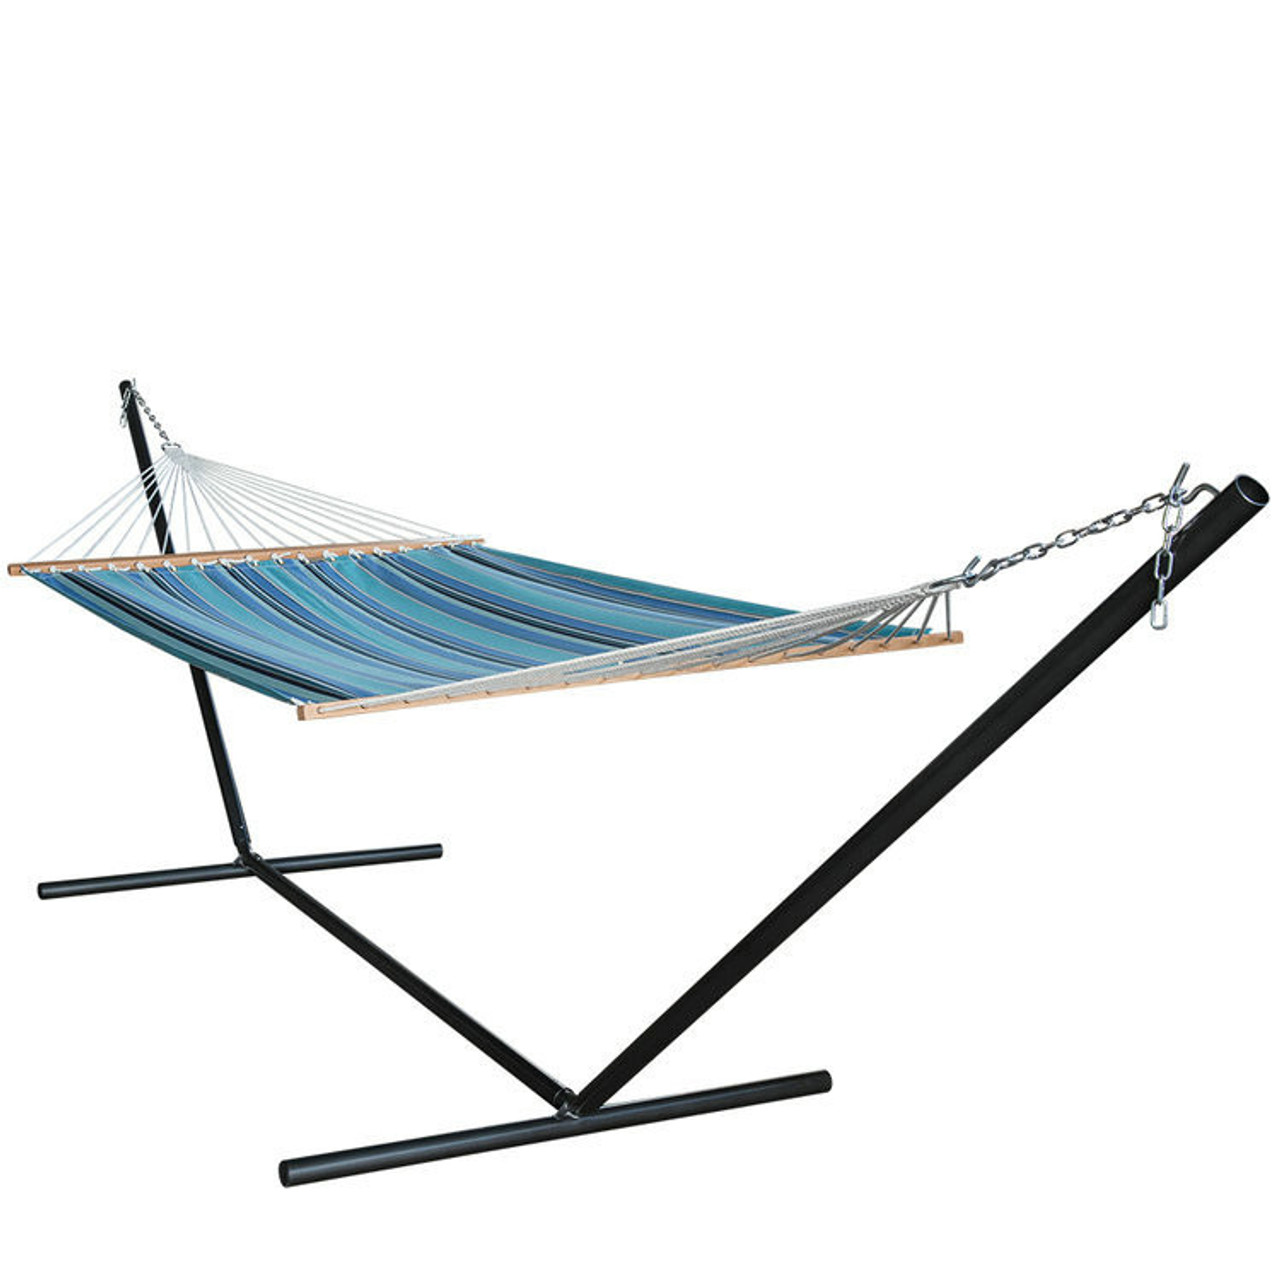 all weather sunbrella fabric hammocks with spread bar and handcrafted polyester rope for two person all weather sunbrella hammocks with spread bar for two person 450      rh   sundaleoutdoor